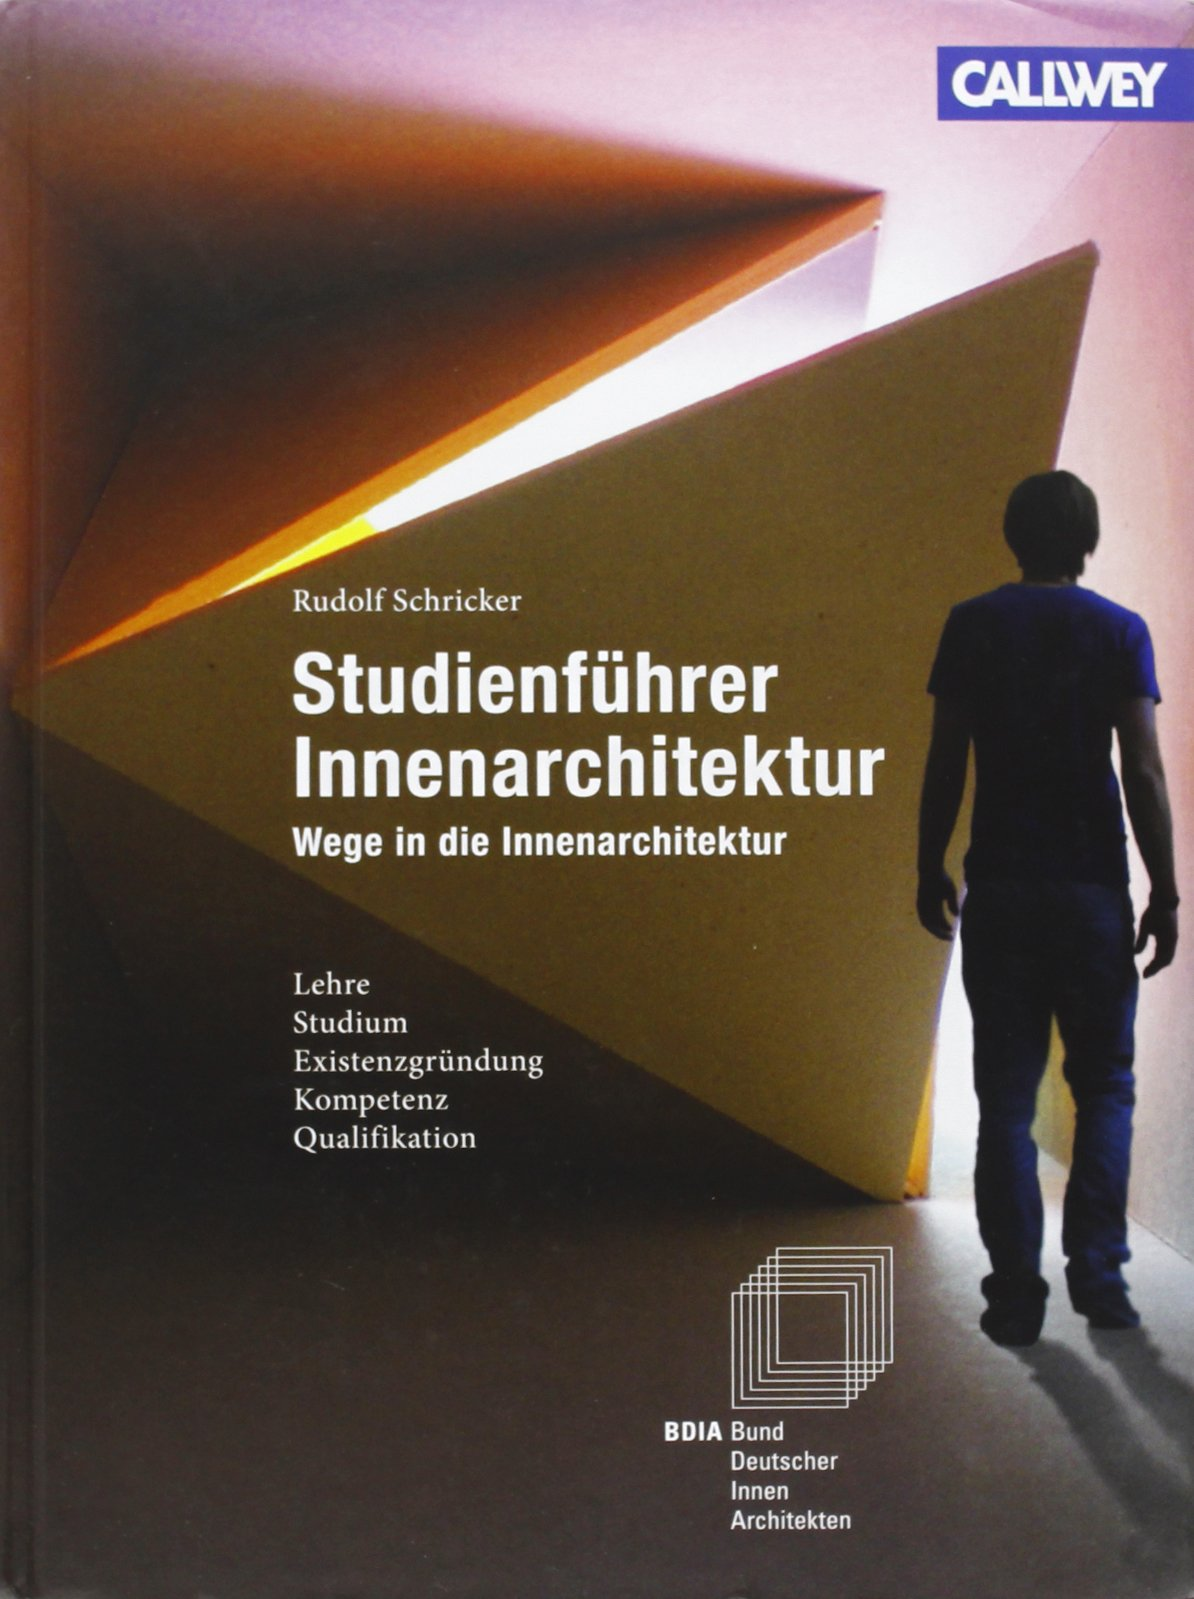 Innenarchitekt studium  Studienführer Innenarchitektur: Amazon.de: Bund Deutscher ...